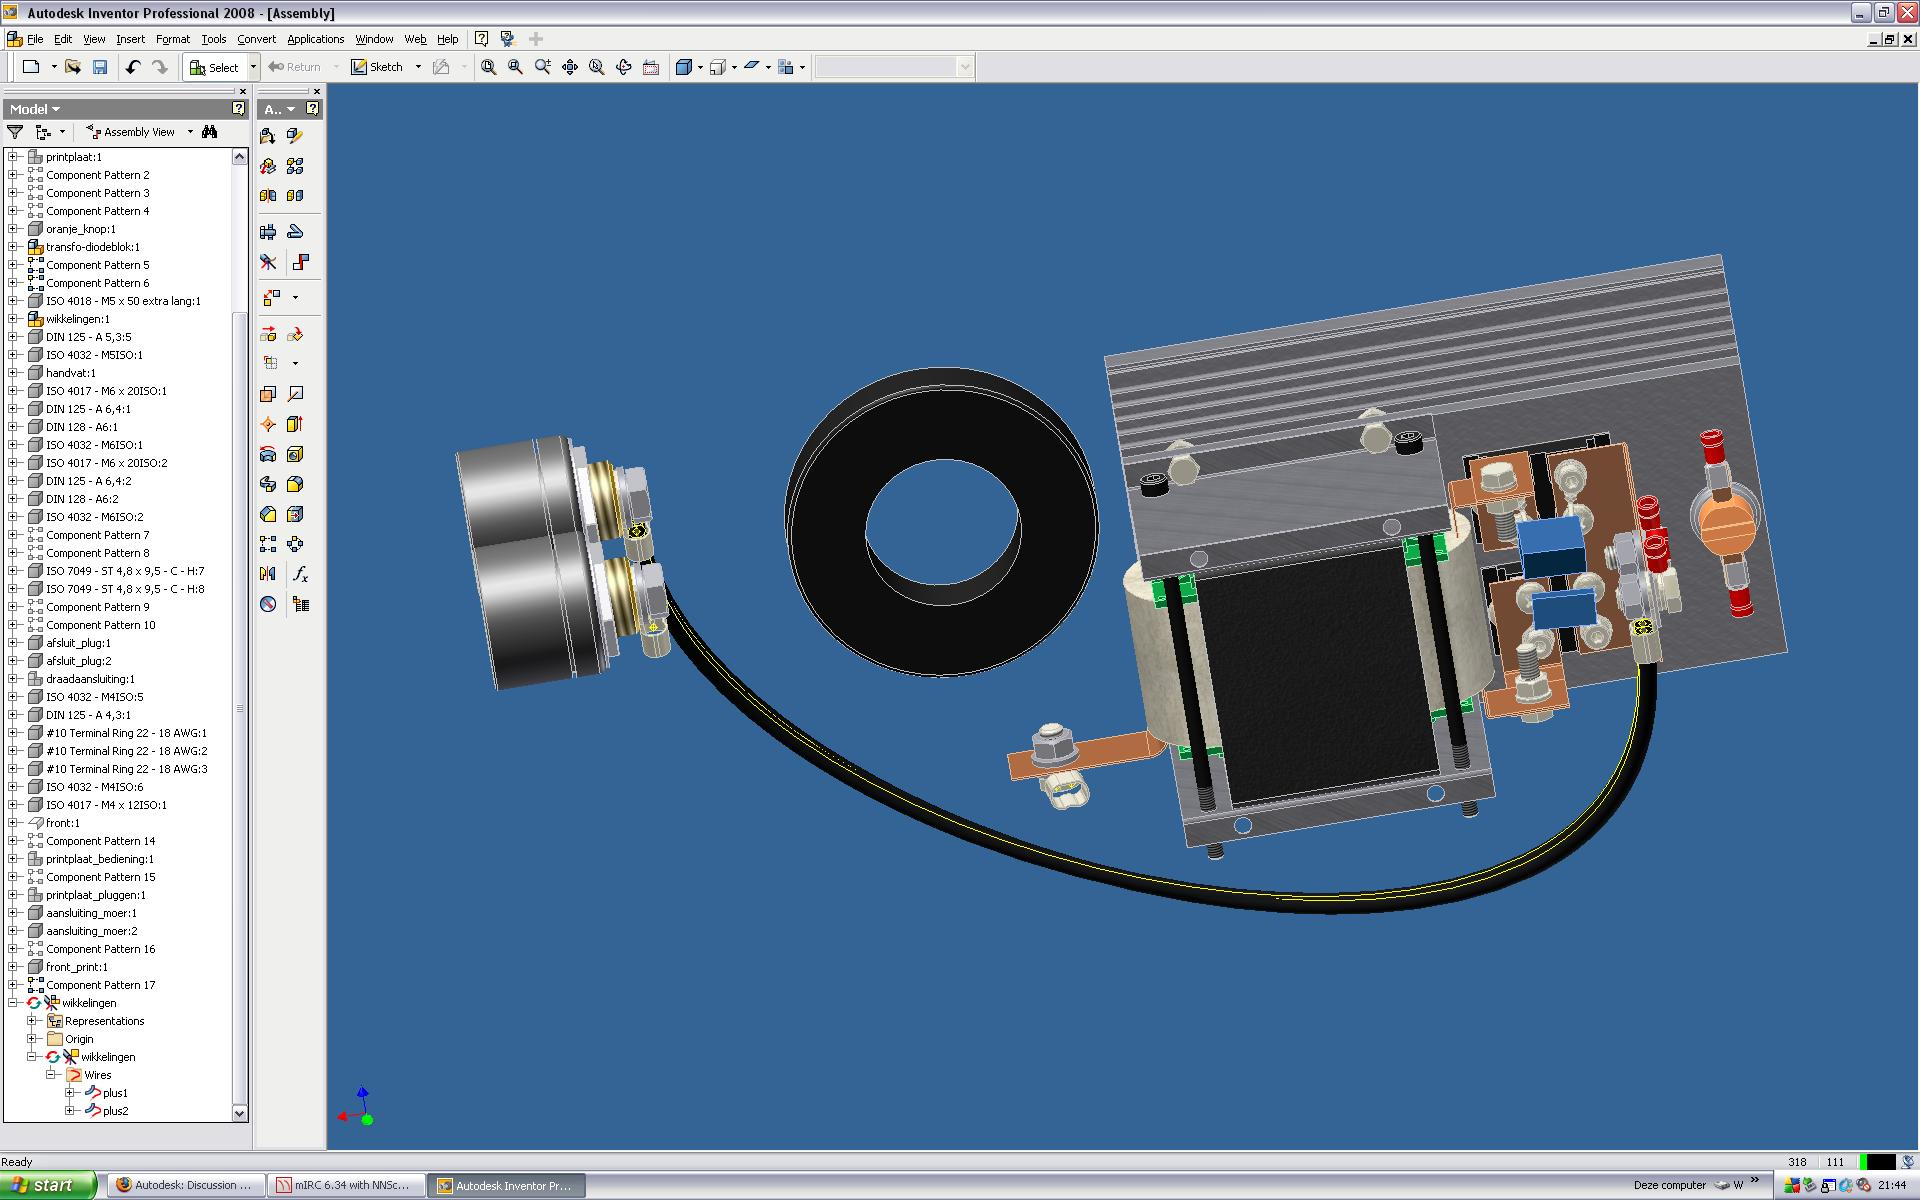 cable winding - Autodesk Community- Inventor